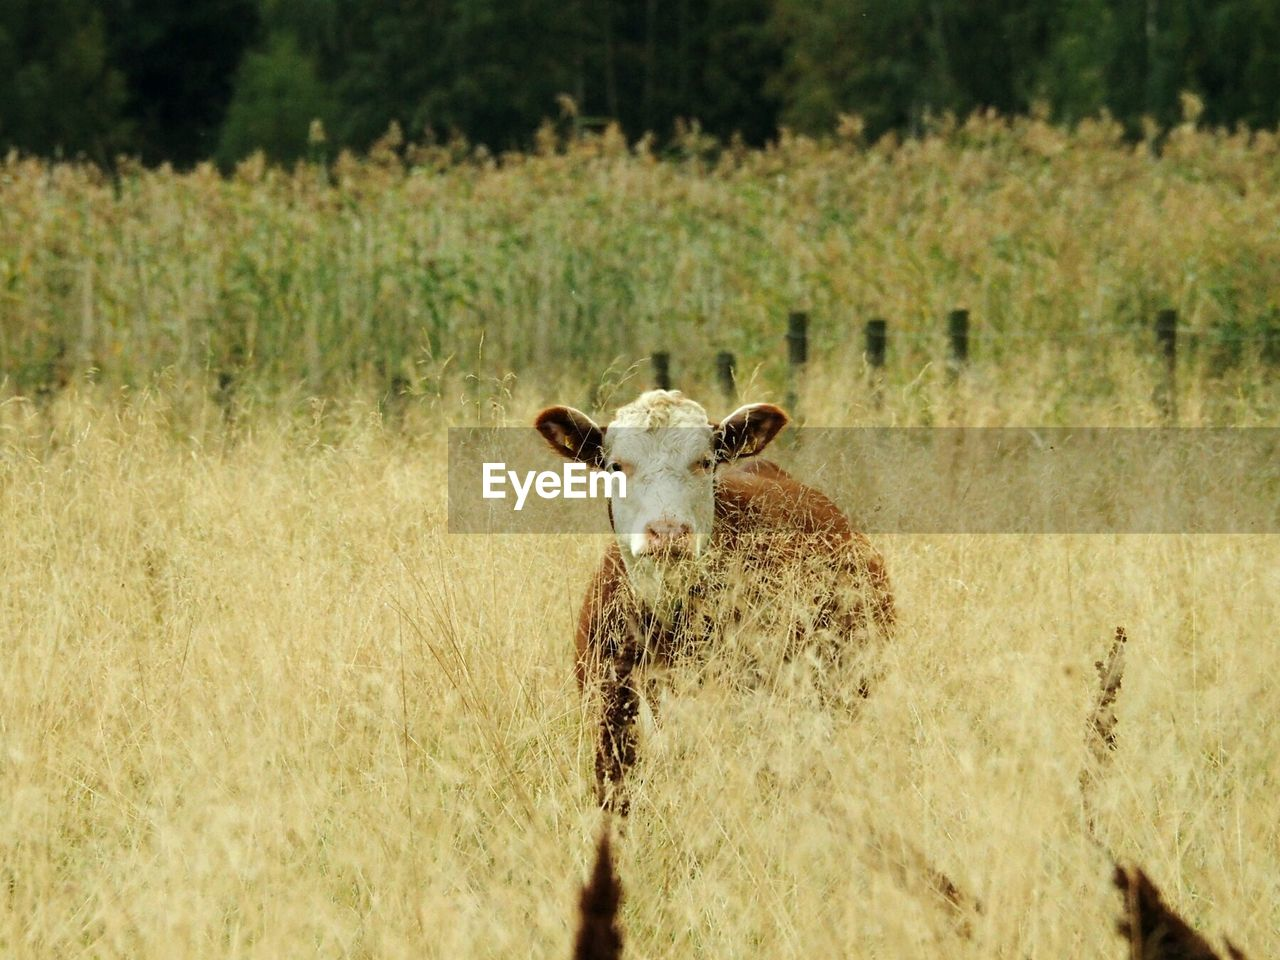 mammal, domestic animals, animal, field, animal themes, land, plant, domestic, pets, grass, looking at camera, livestock, vertebrate, one animal, nature, portrait, no people, day, cattle, landscape, herbivorous, outdoors